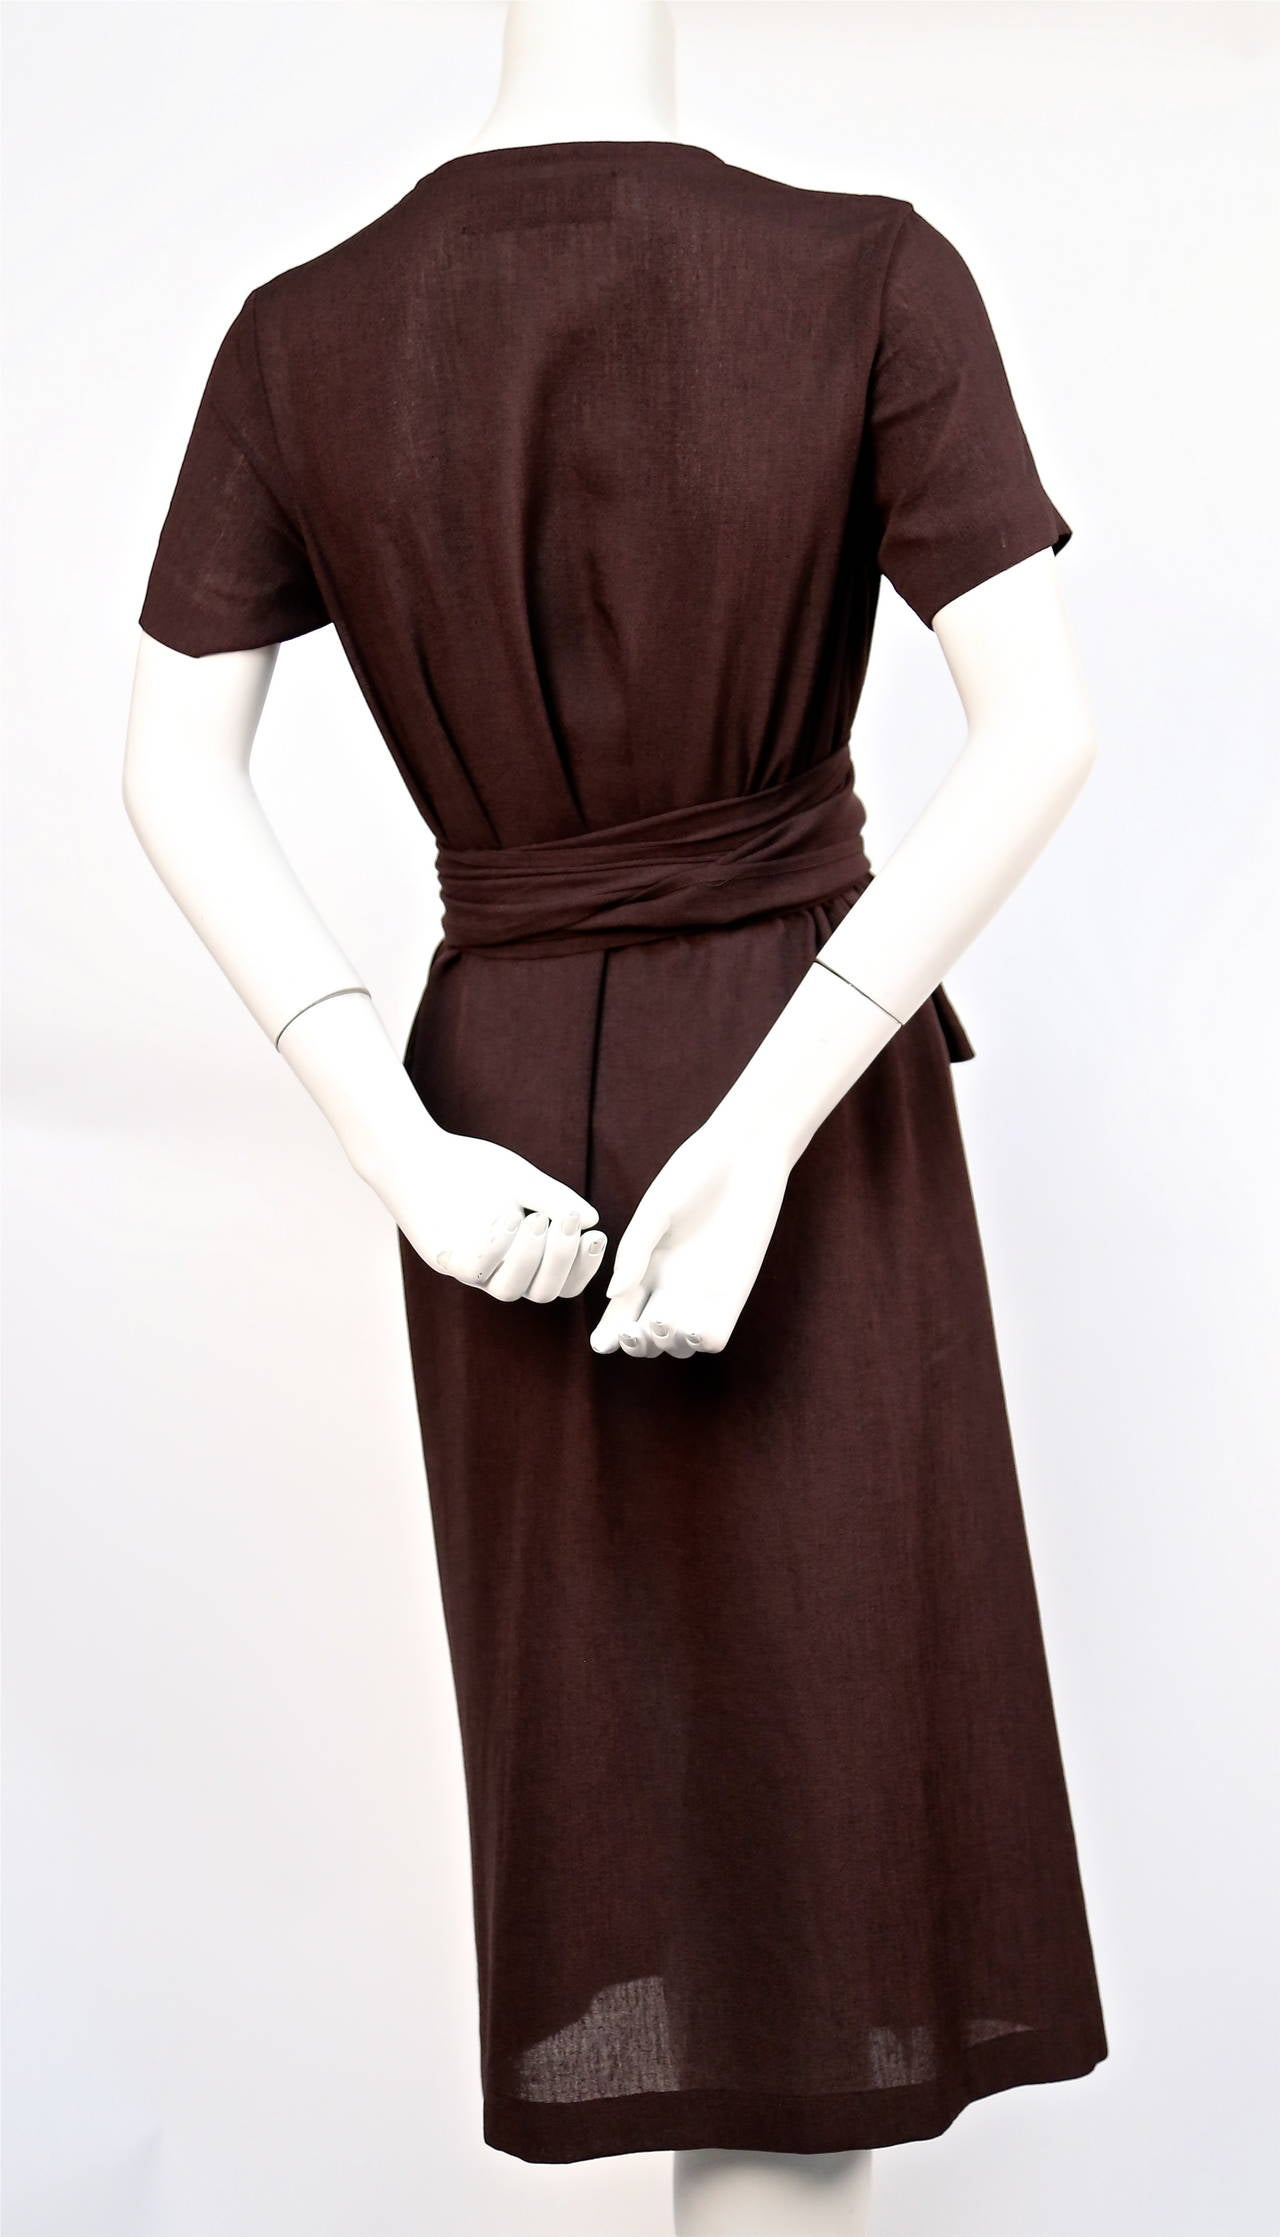 1997 COMME DES GARCONS brown draped dress with wrap waist In Excellent Condition For Sale In San Francisco, CA